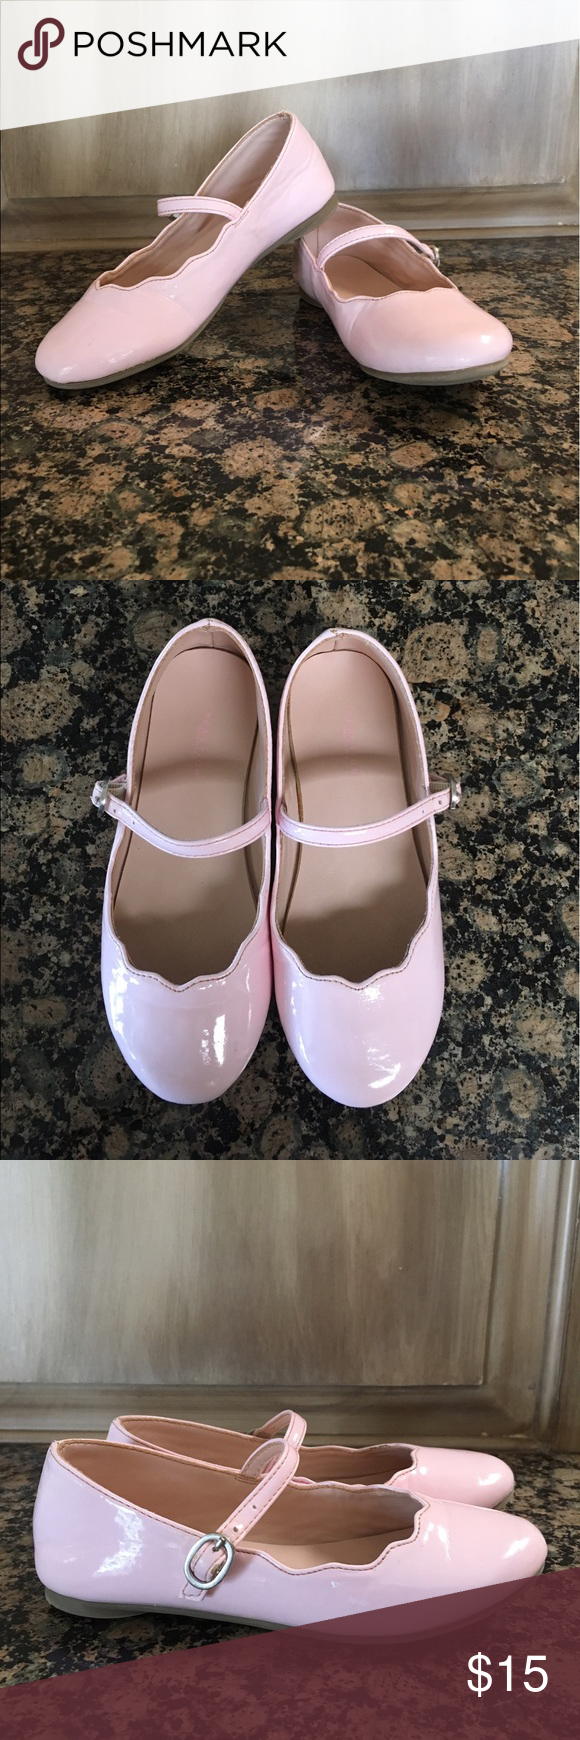 Pink dress shoes for ladies  SALE Kenneth Cole Girls Dress Shoes  Girls dress shoes Dress